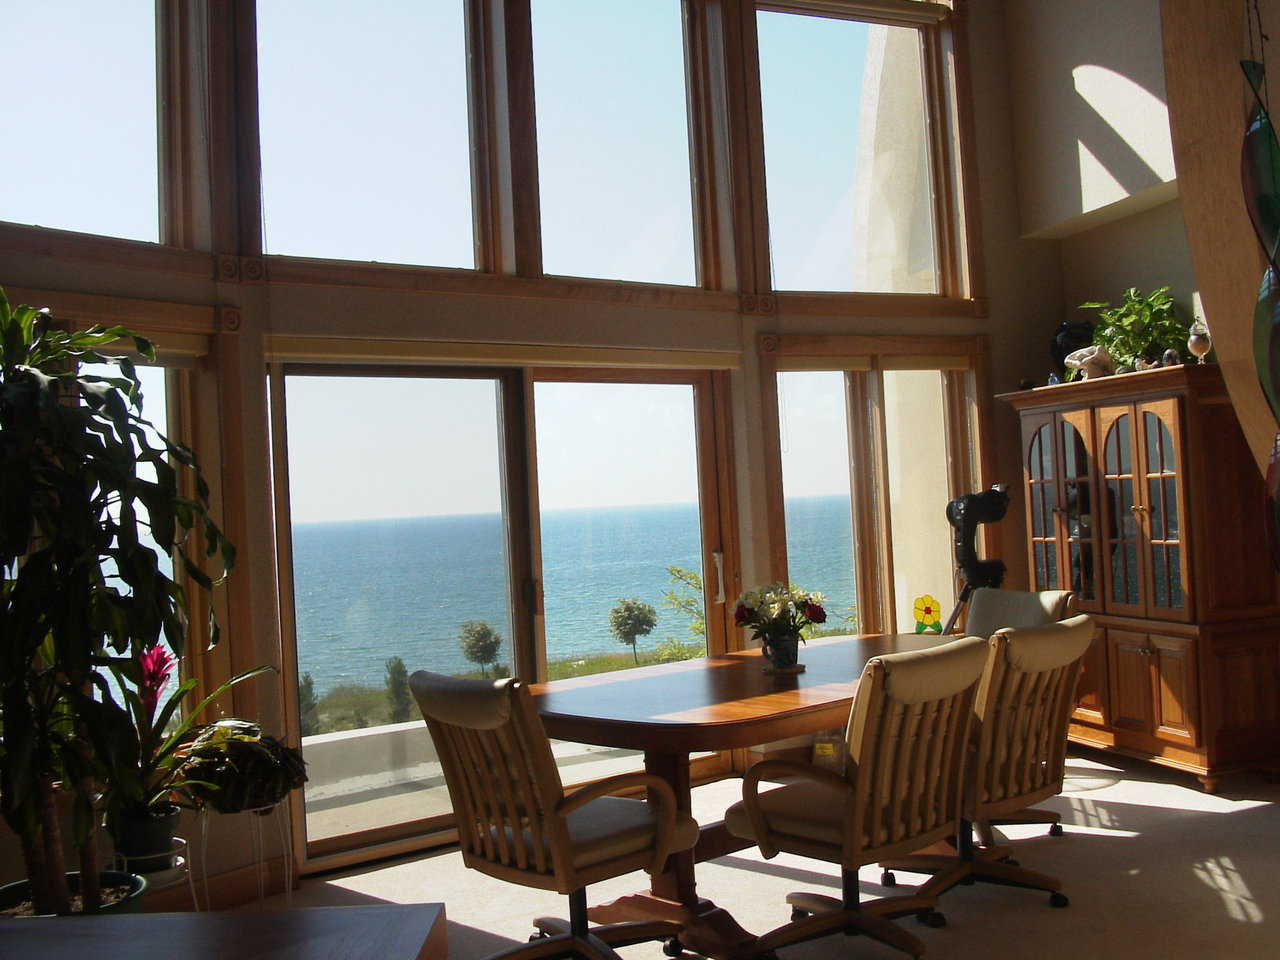 Windows — A wall of windows in the dining area provides light and a gorgeous view of the surroundings.